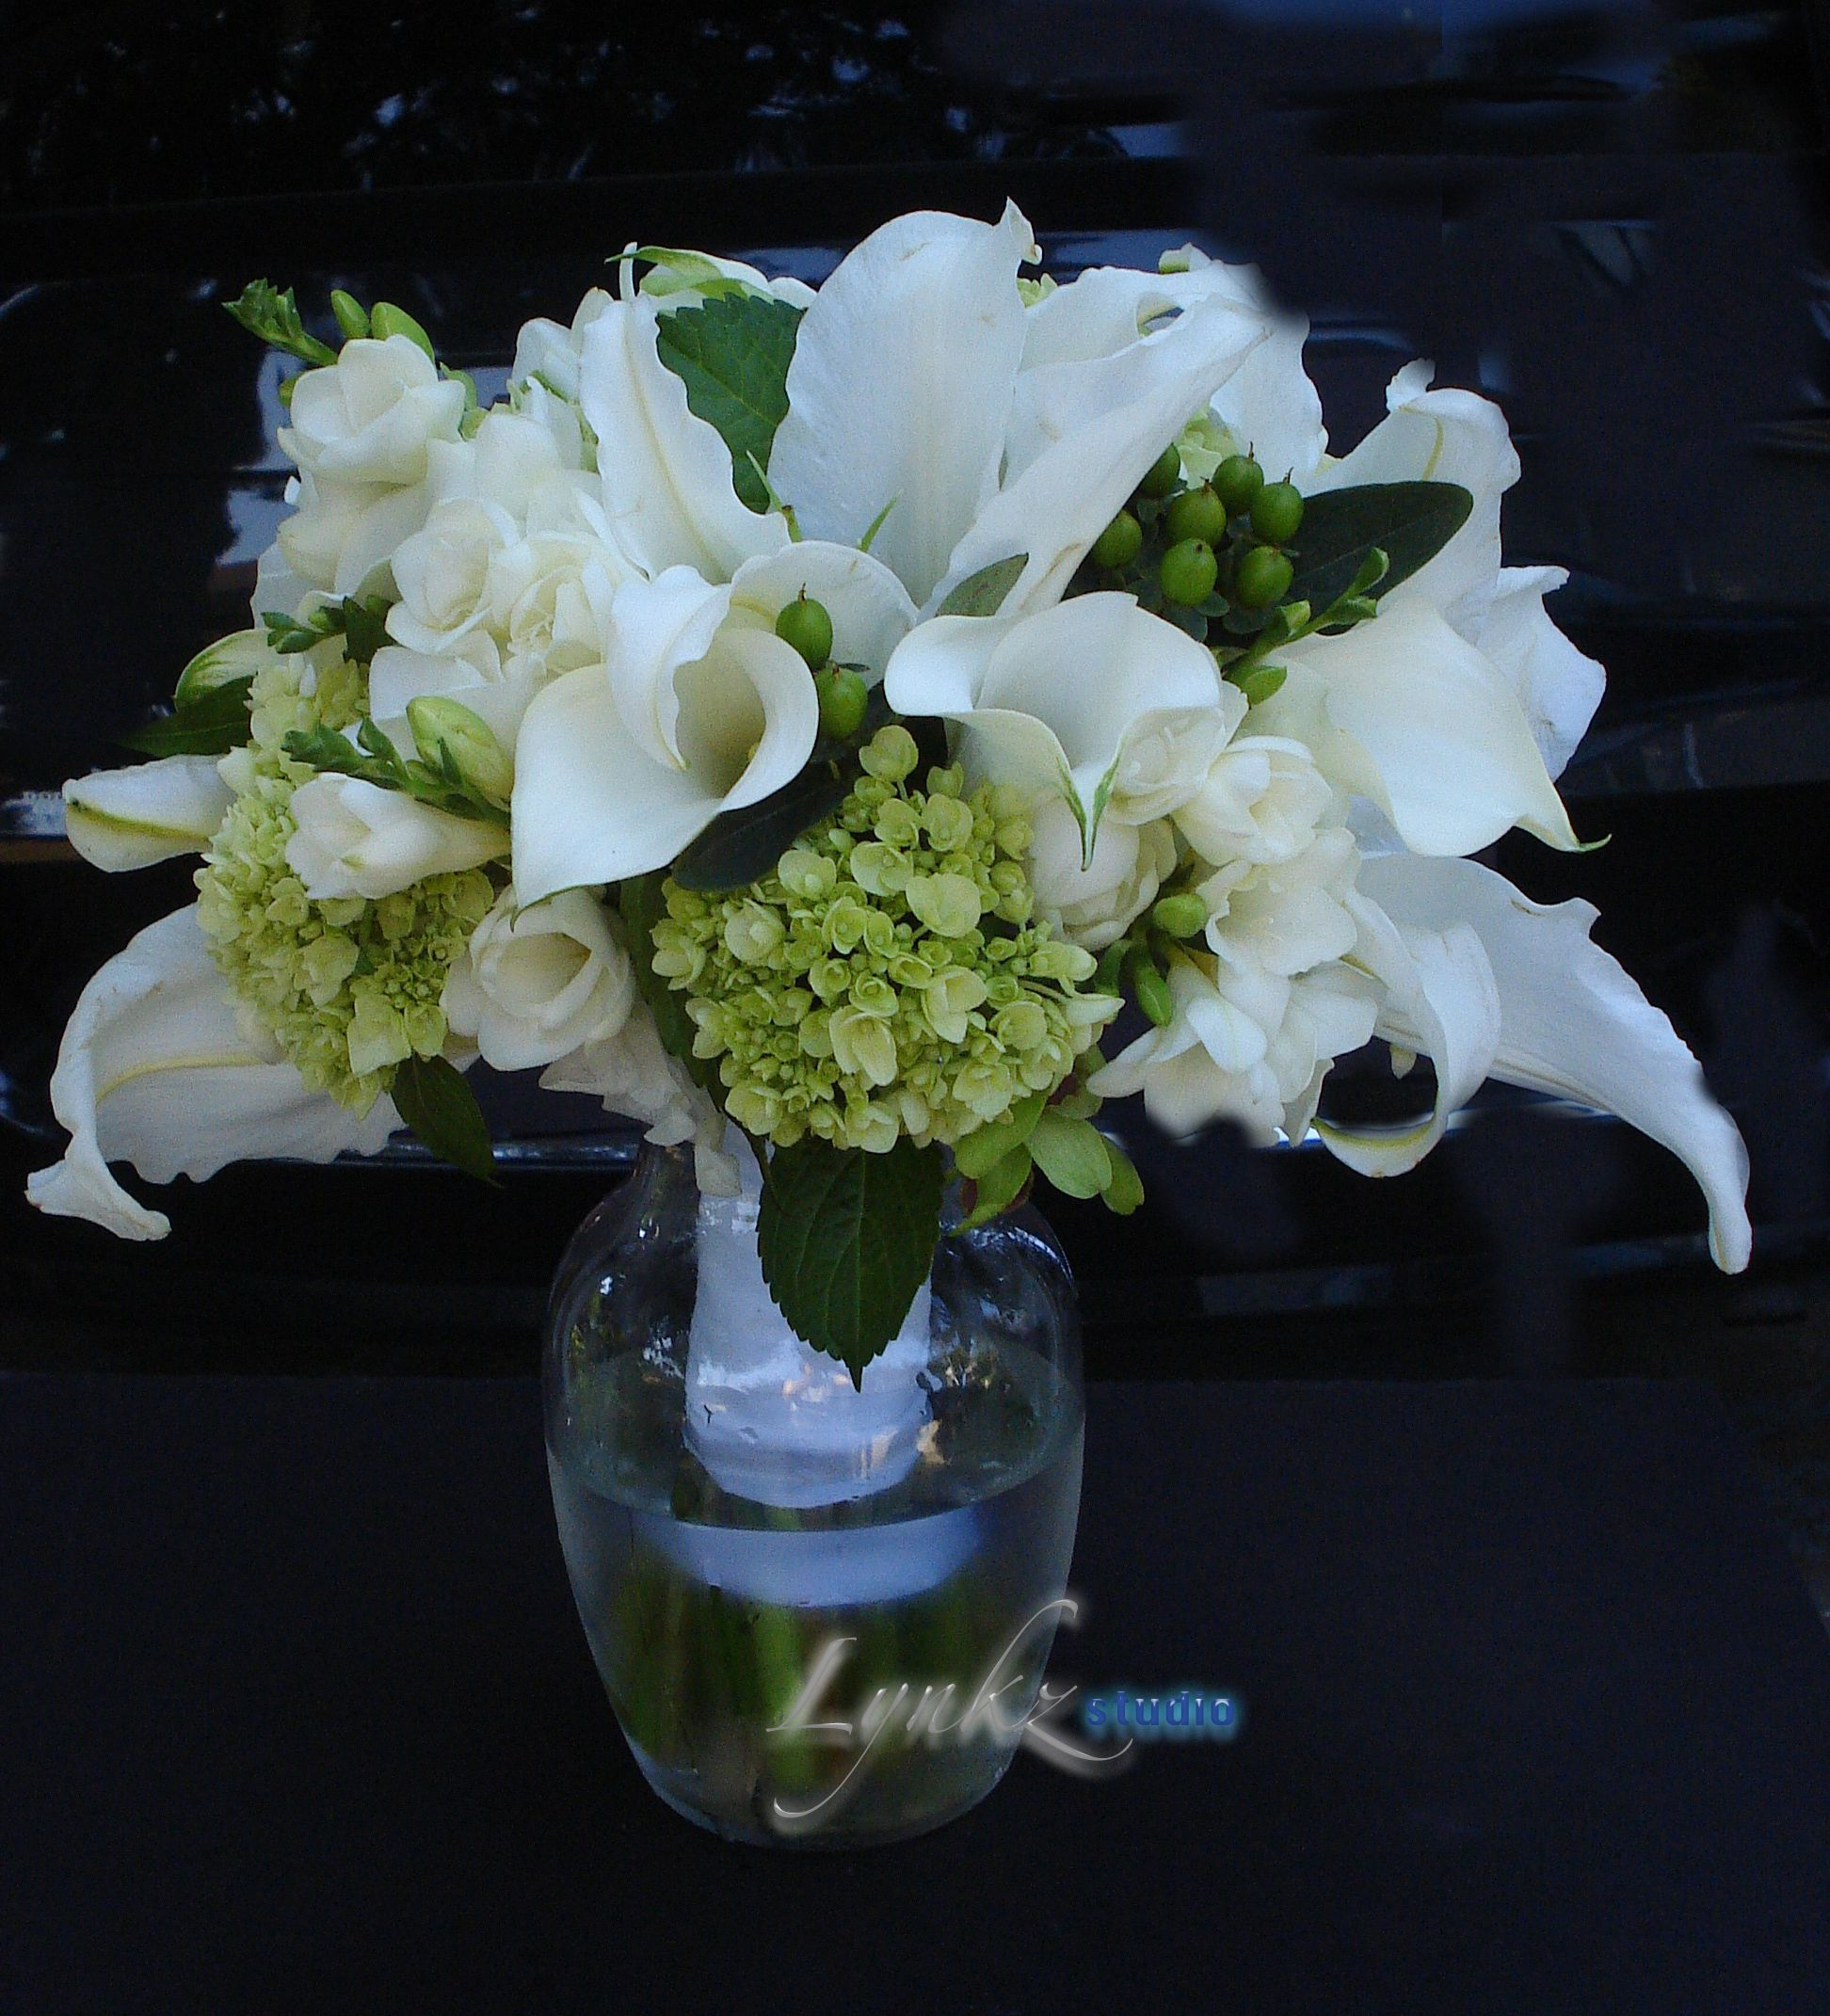 Bride S Bouquet From Oriental Lily Calla Lily Freesia And Green Baby Hydrangea Oriental Lily Calla Lily White Flowers